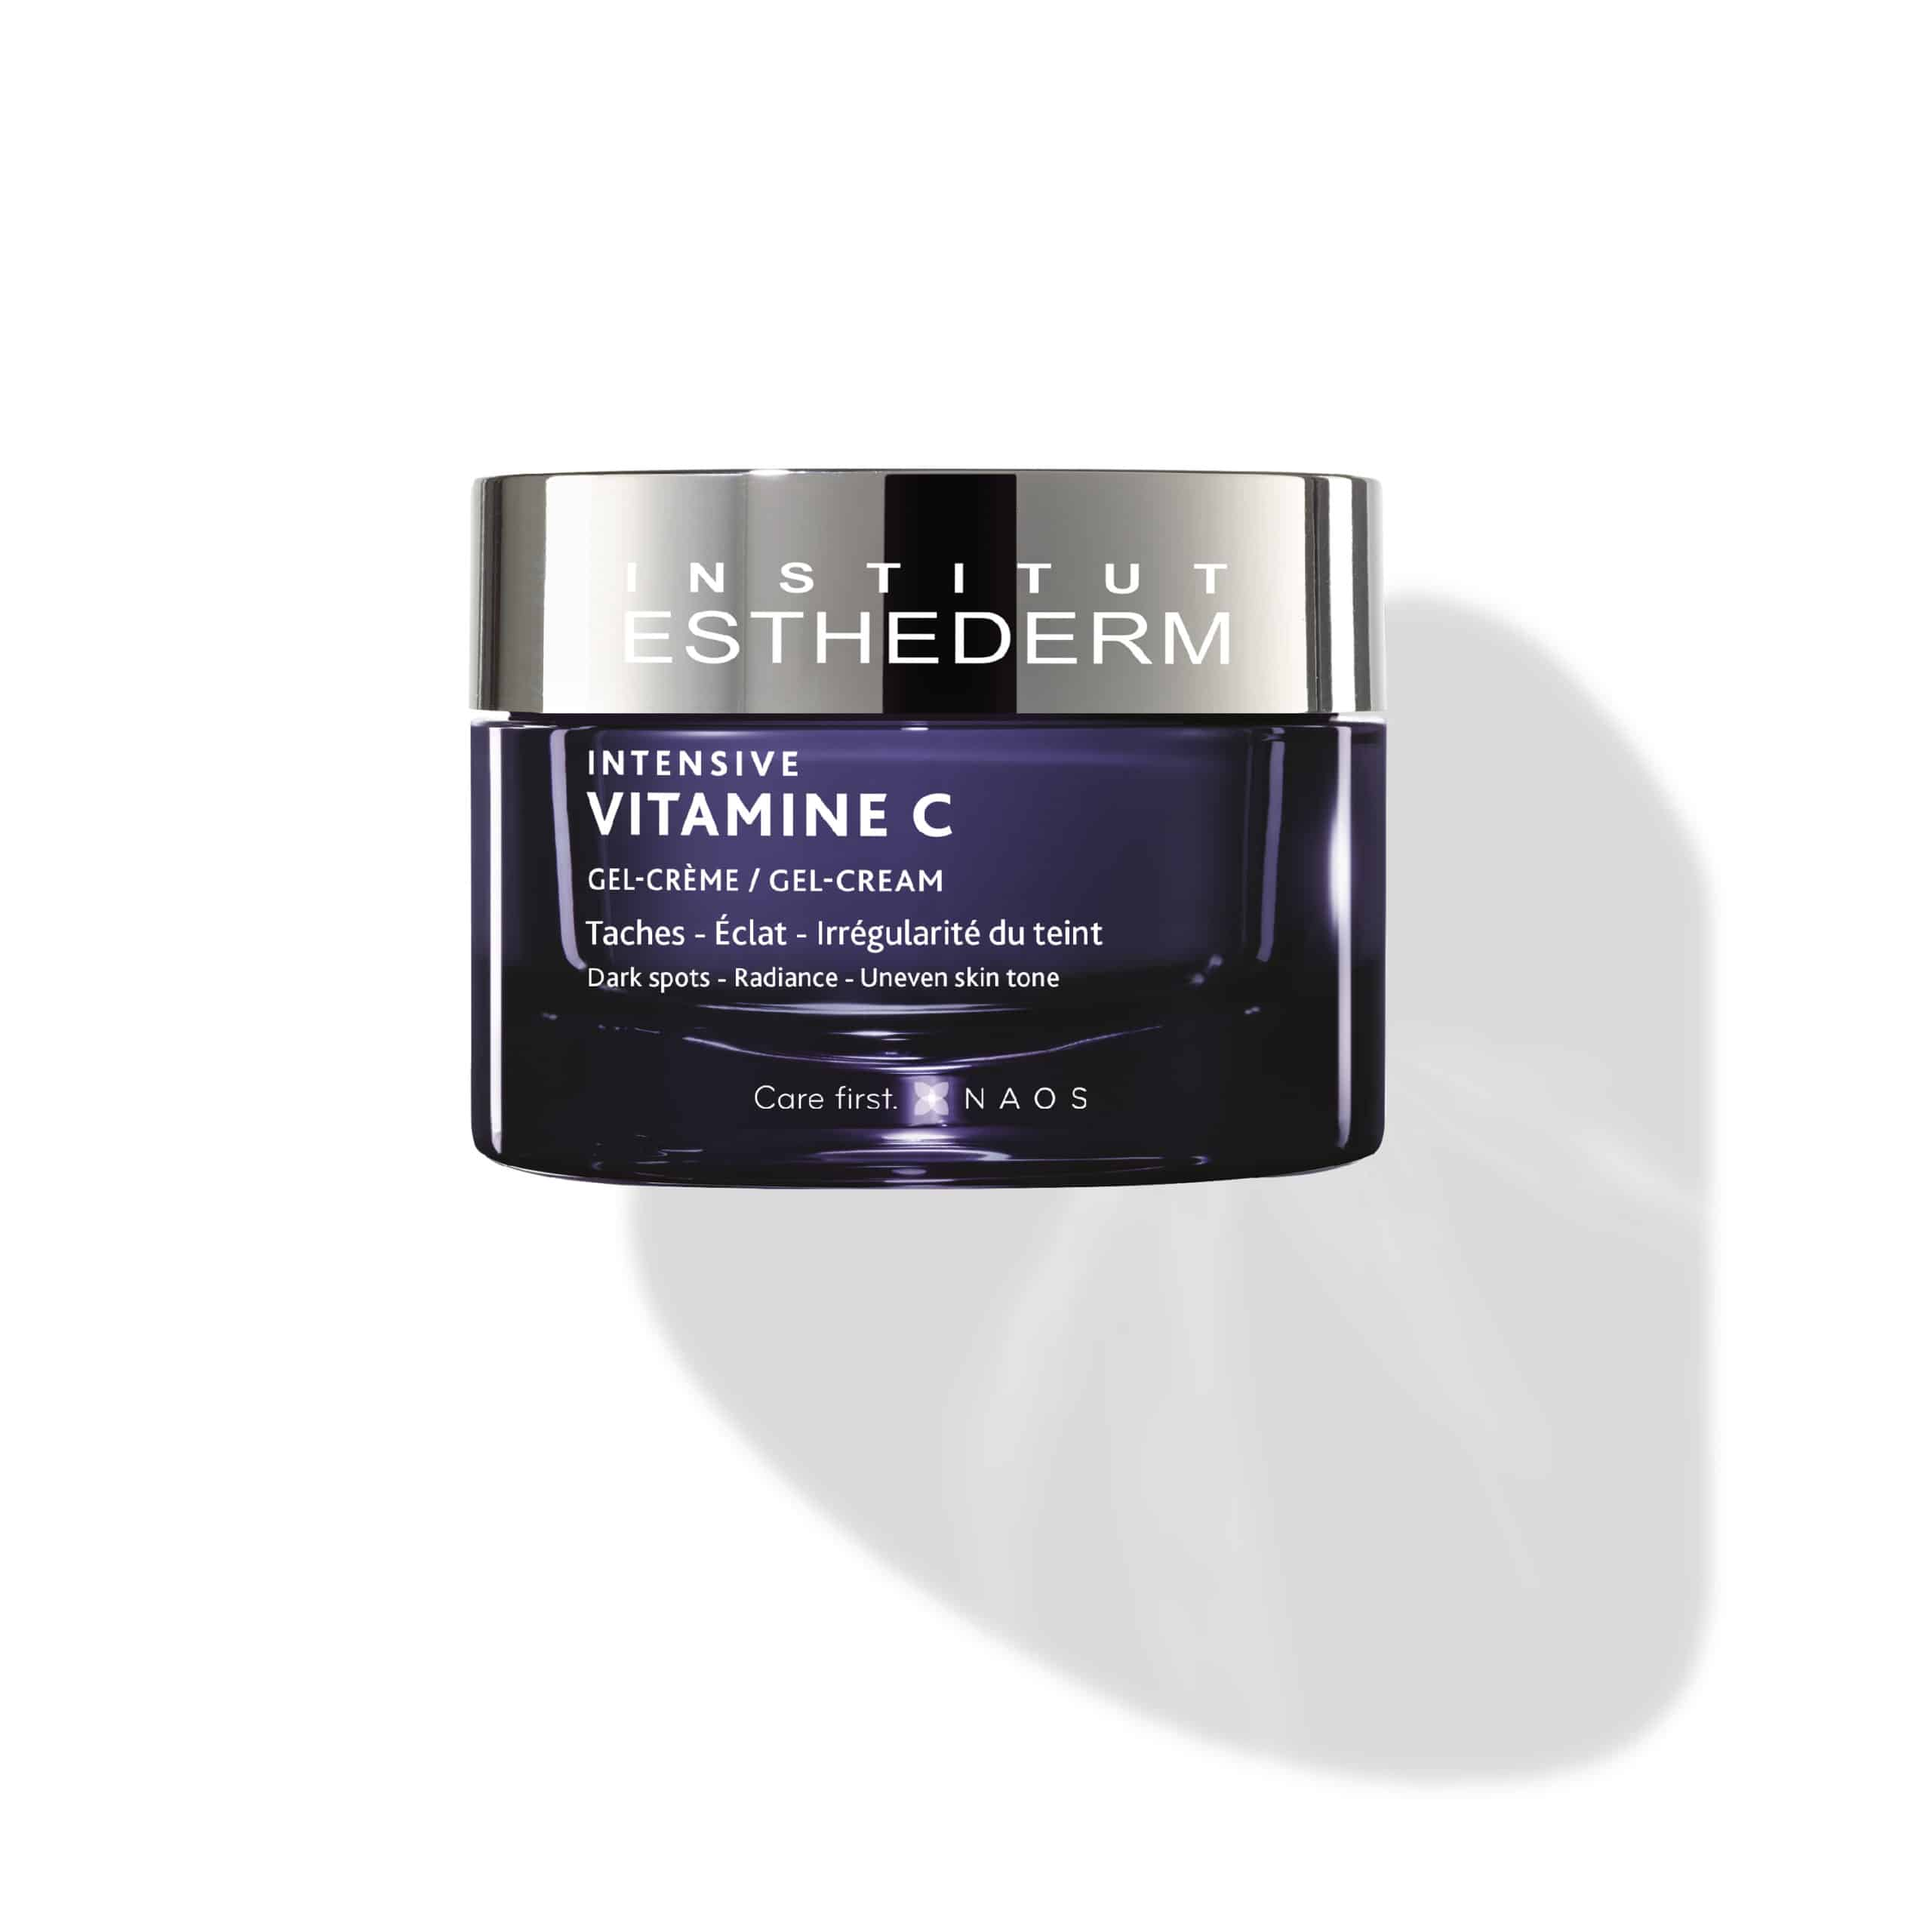 ESTHEDERM photo produit, Intensive Vitamine C Gel-Creme 50ml, Taches, Éclat, Irrégularité du teint, antioxydant